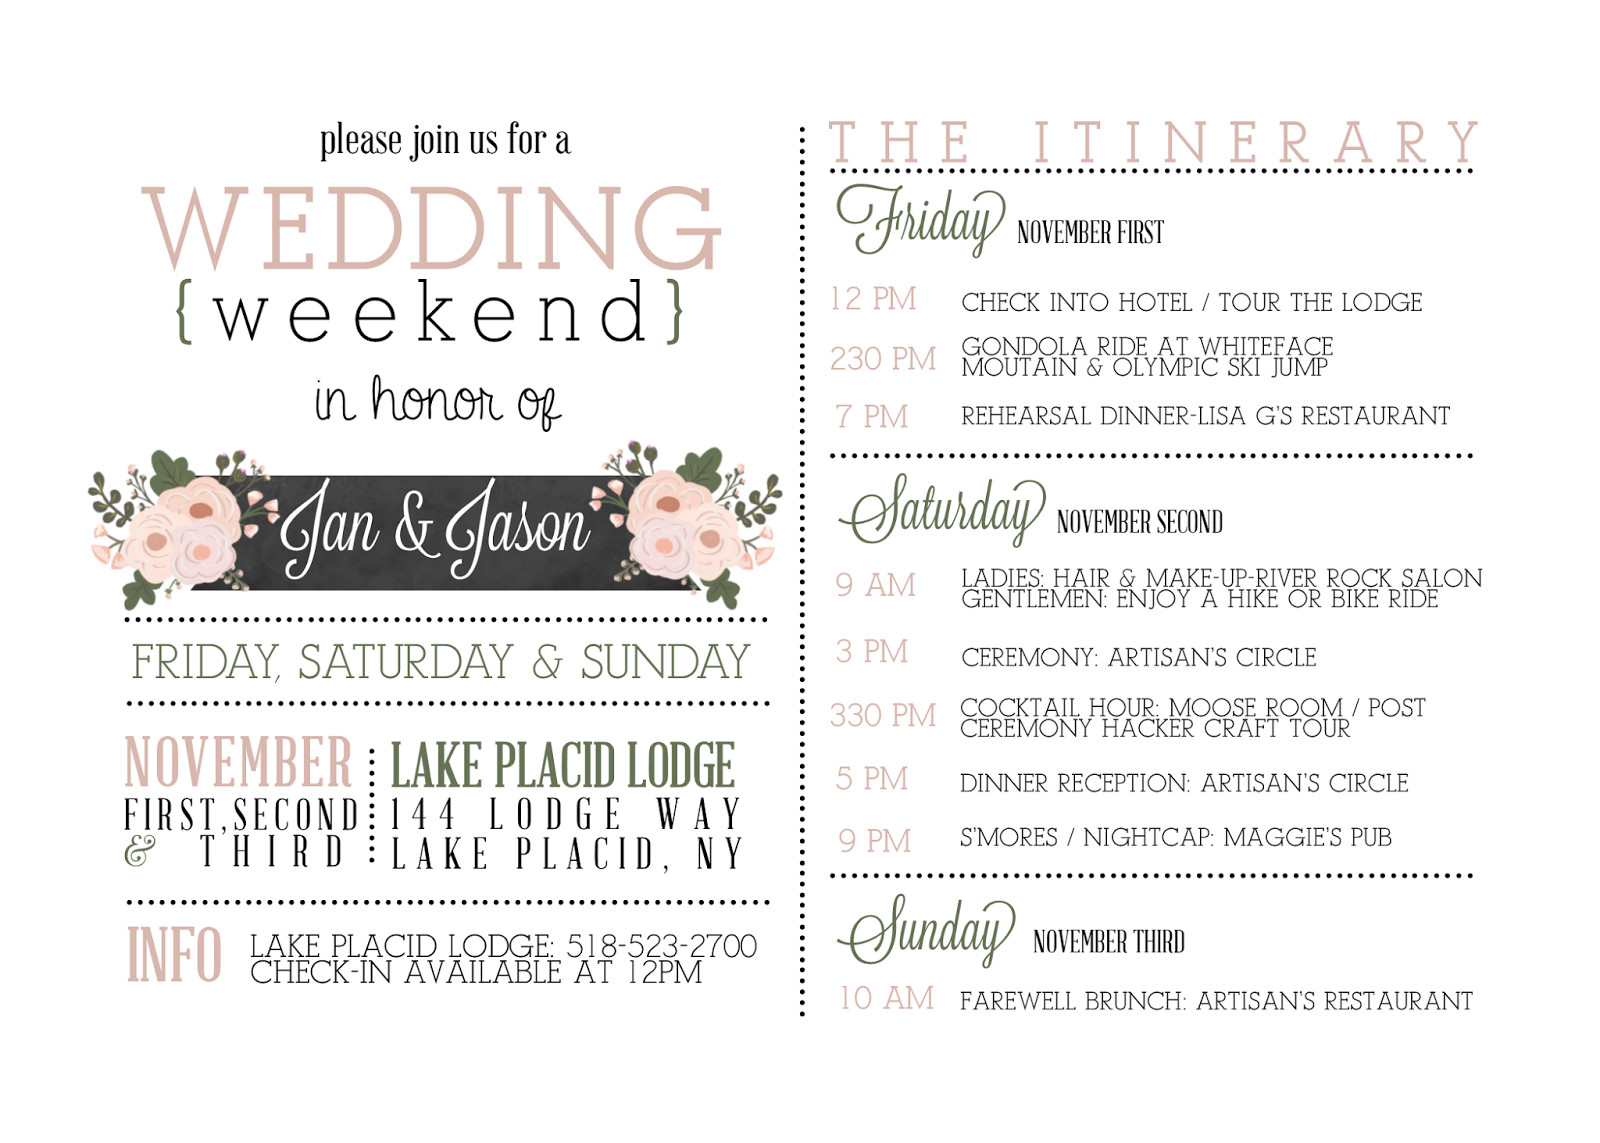 Wedding Weekend Itinerary Template Sugar Queens Weekend Itinerary Invites